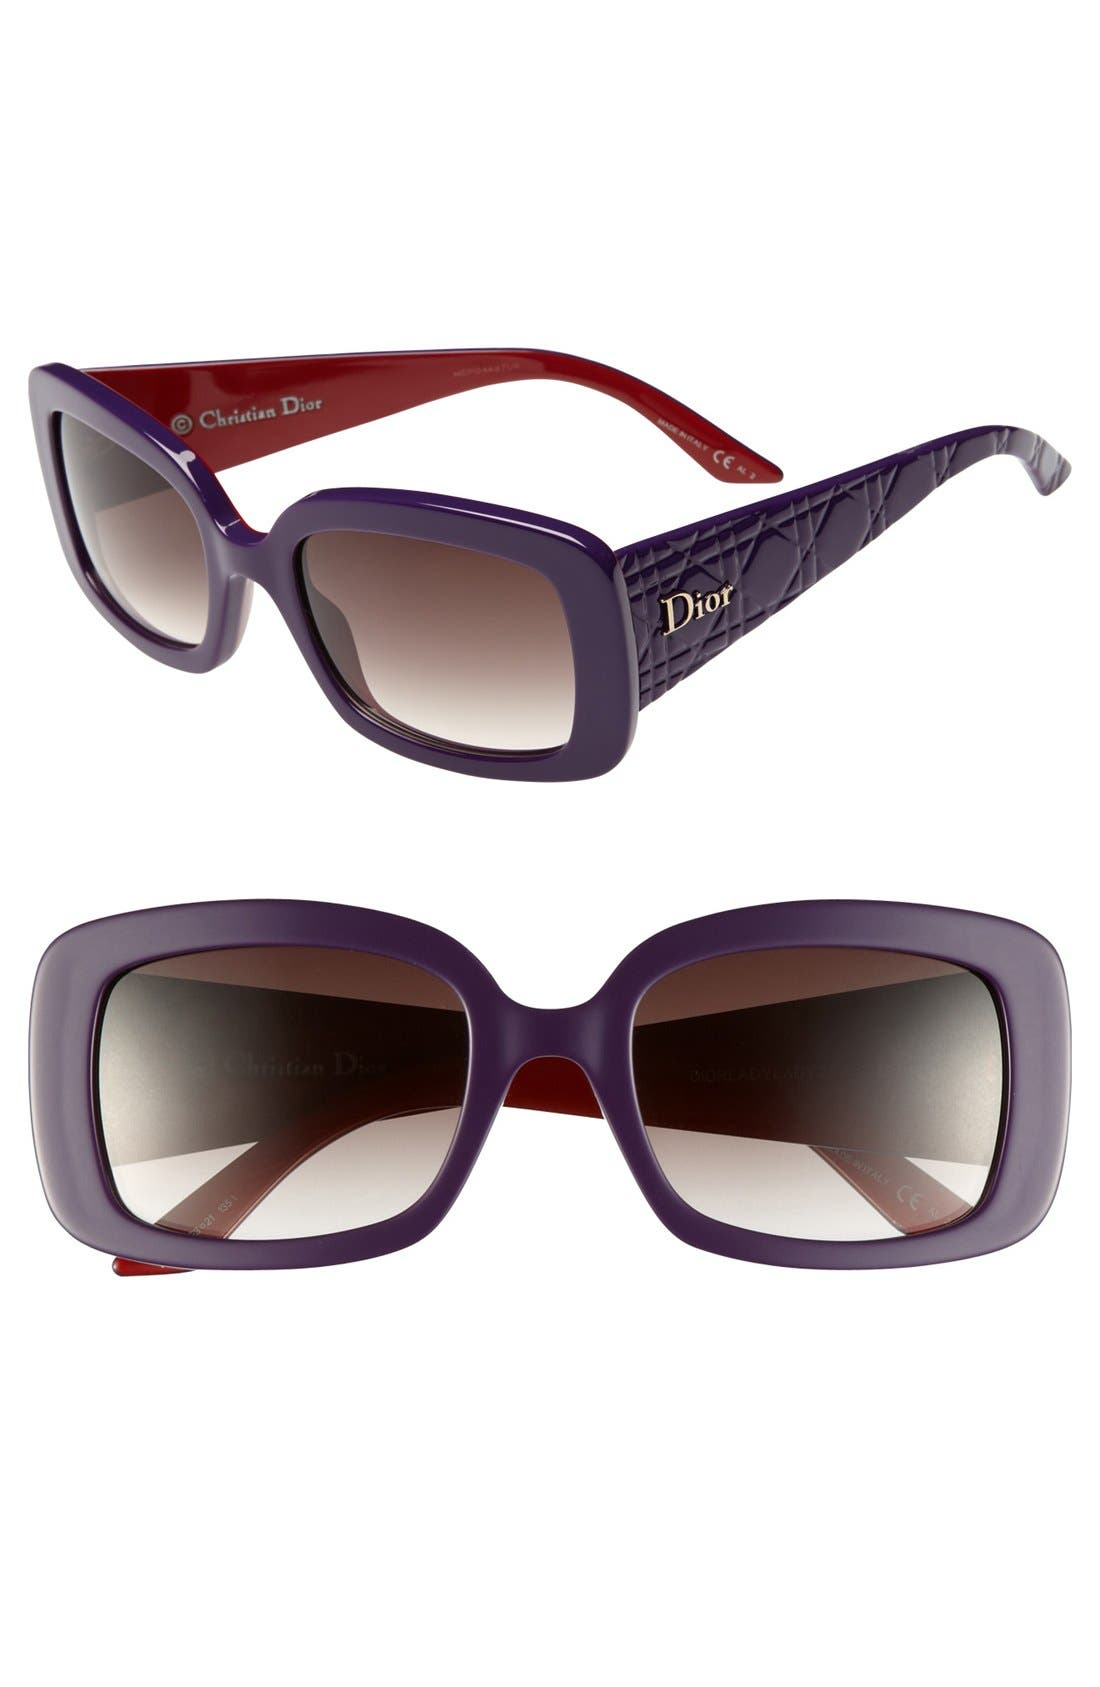 Main Image - Dior 'Ladylady 2' 53mm Square Sunglasses